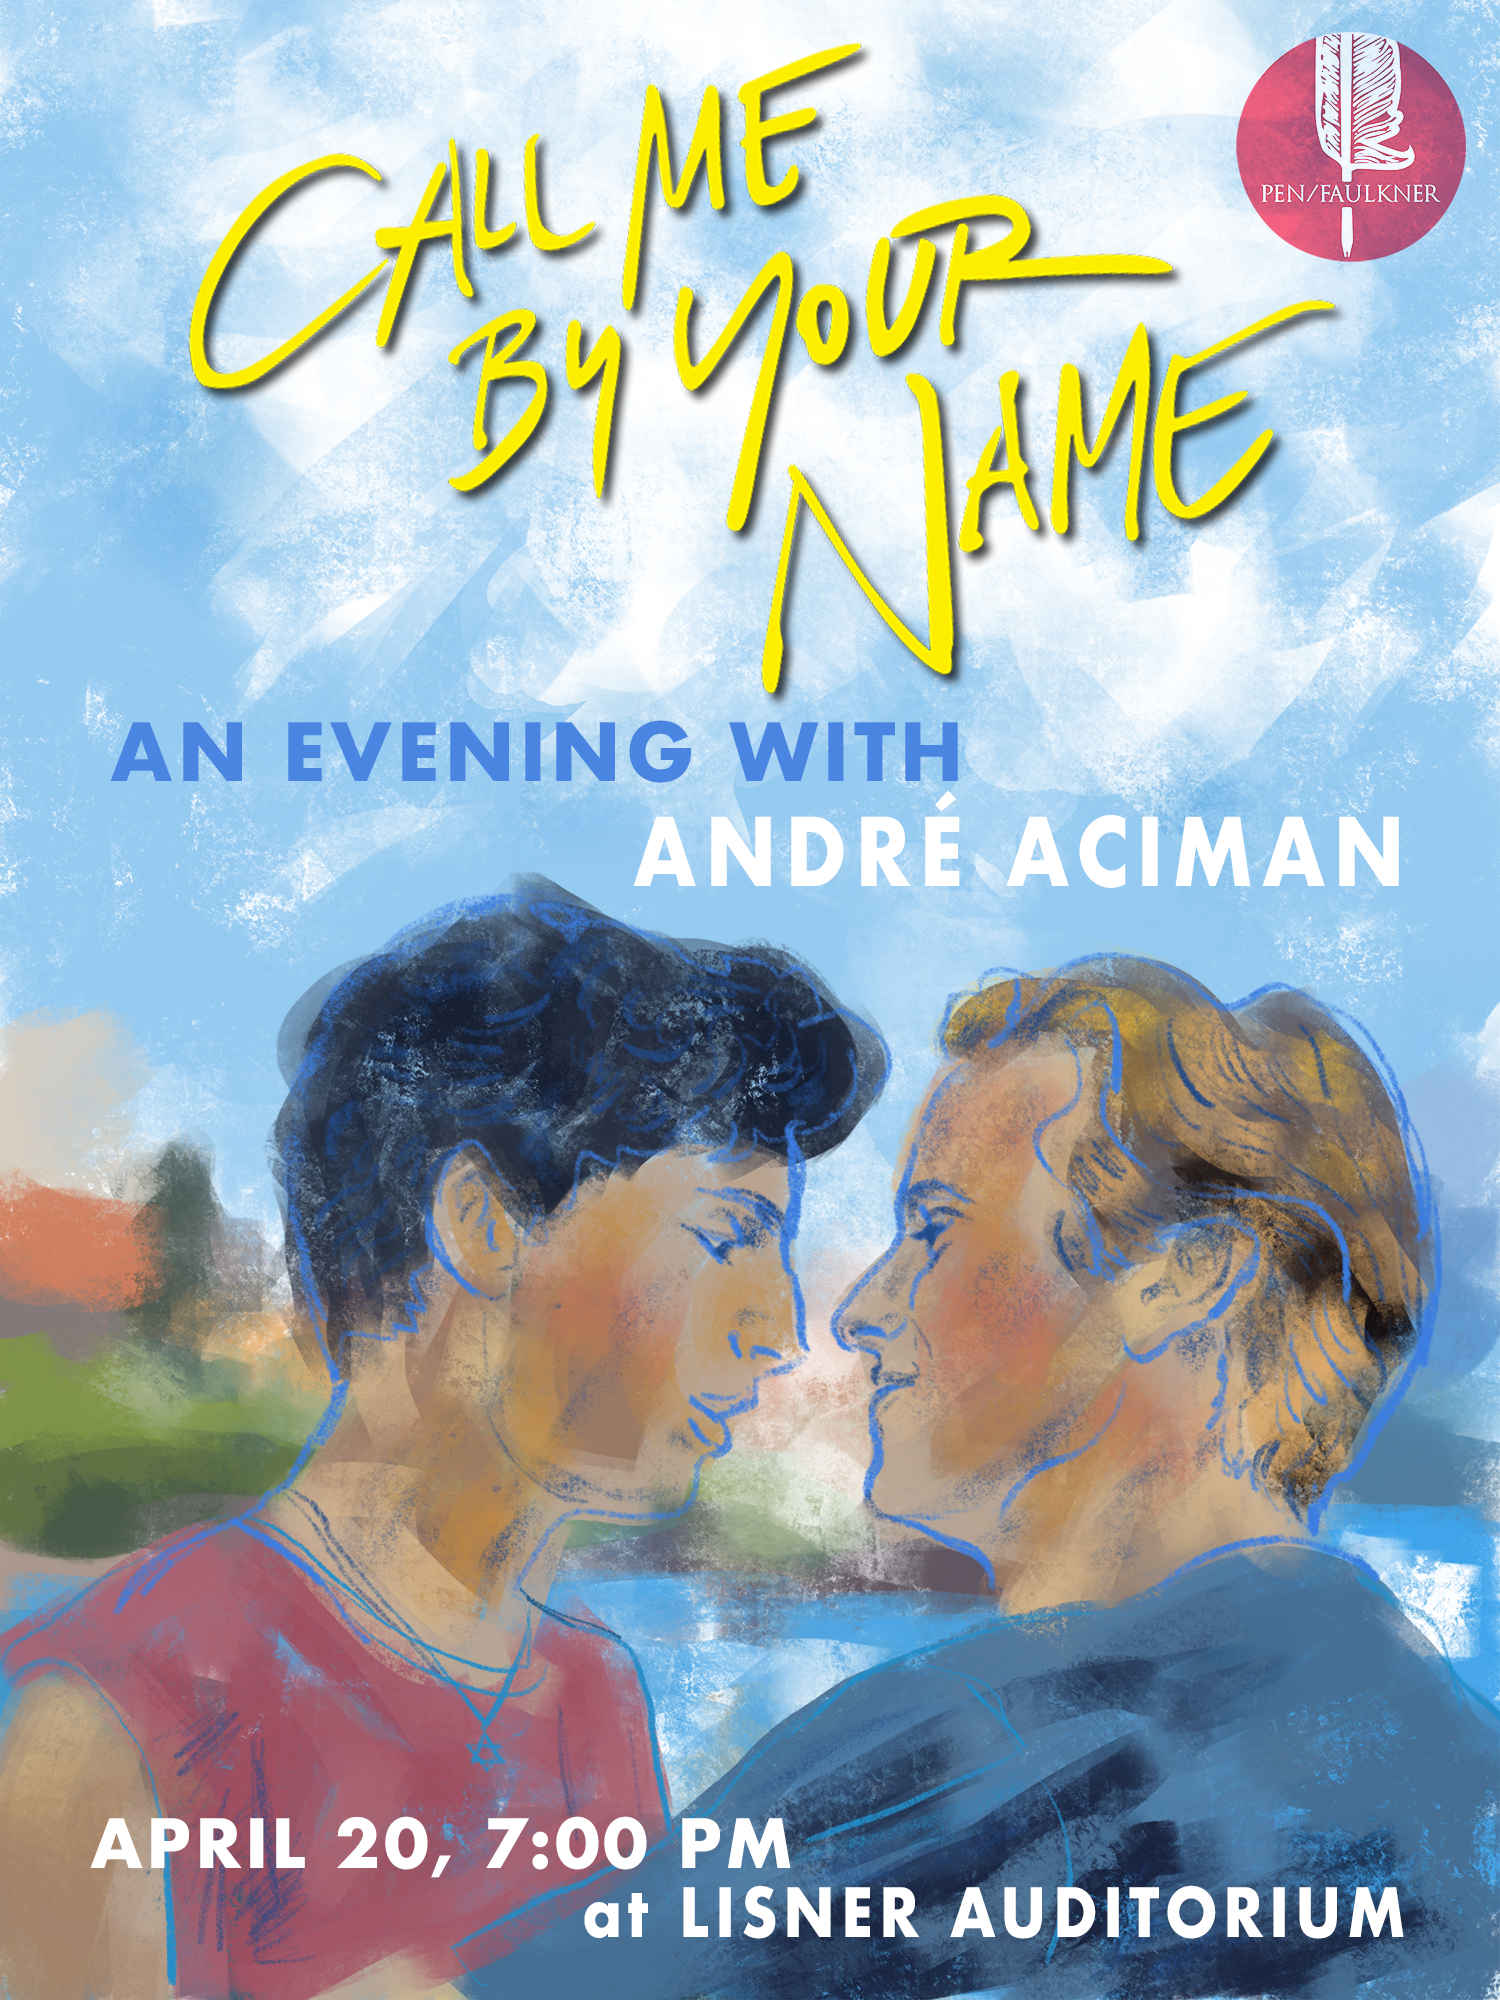 Call Me By Your Name An Evening With André Aciman The Pen